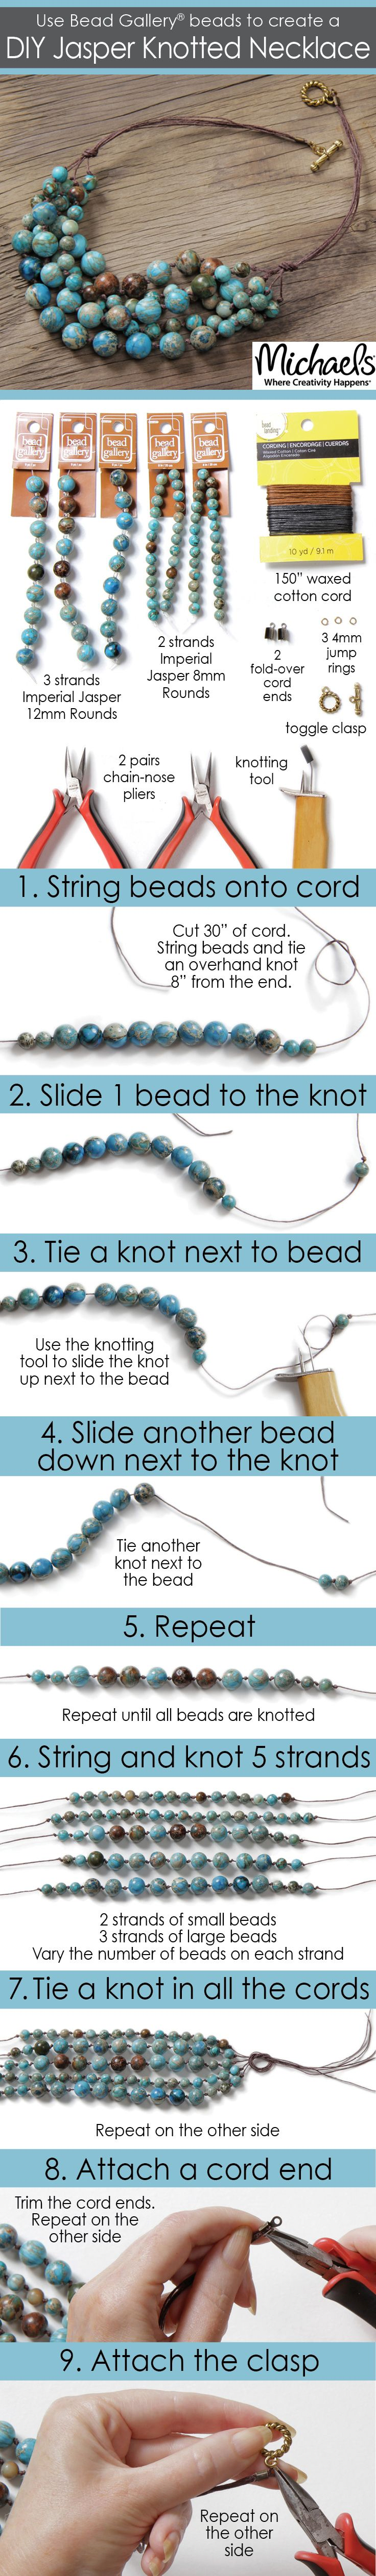 Use Bead Gallery beads available at your local Michaels Store to create a DIY Jasper Knotted Necklace